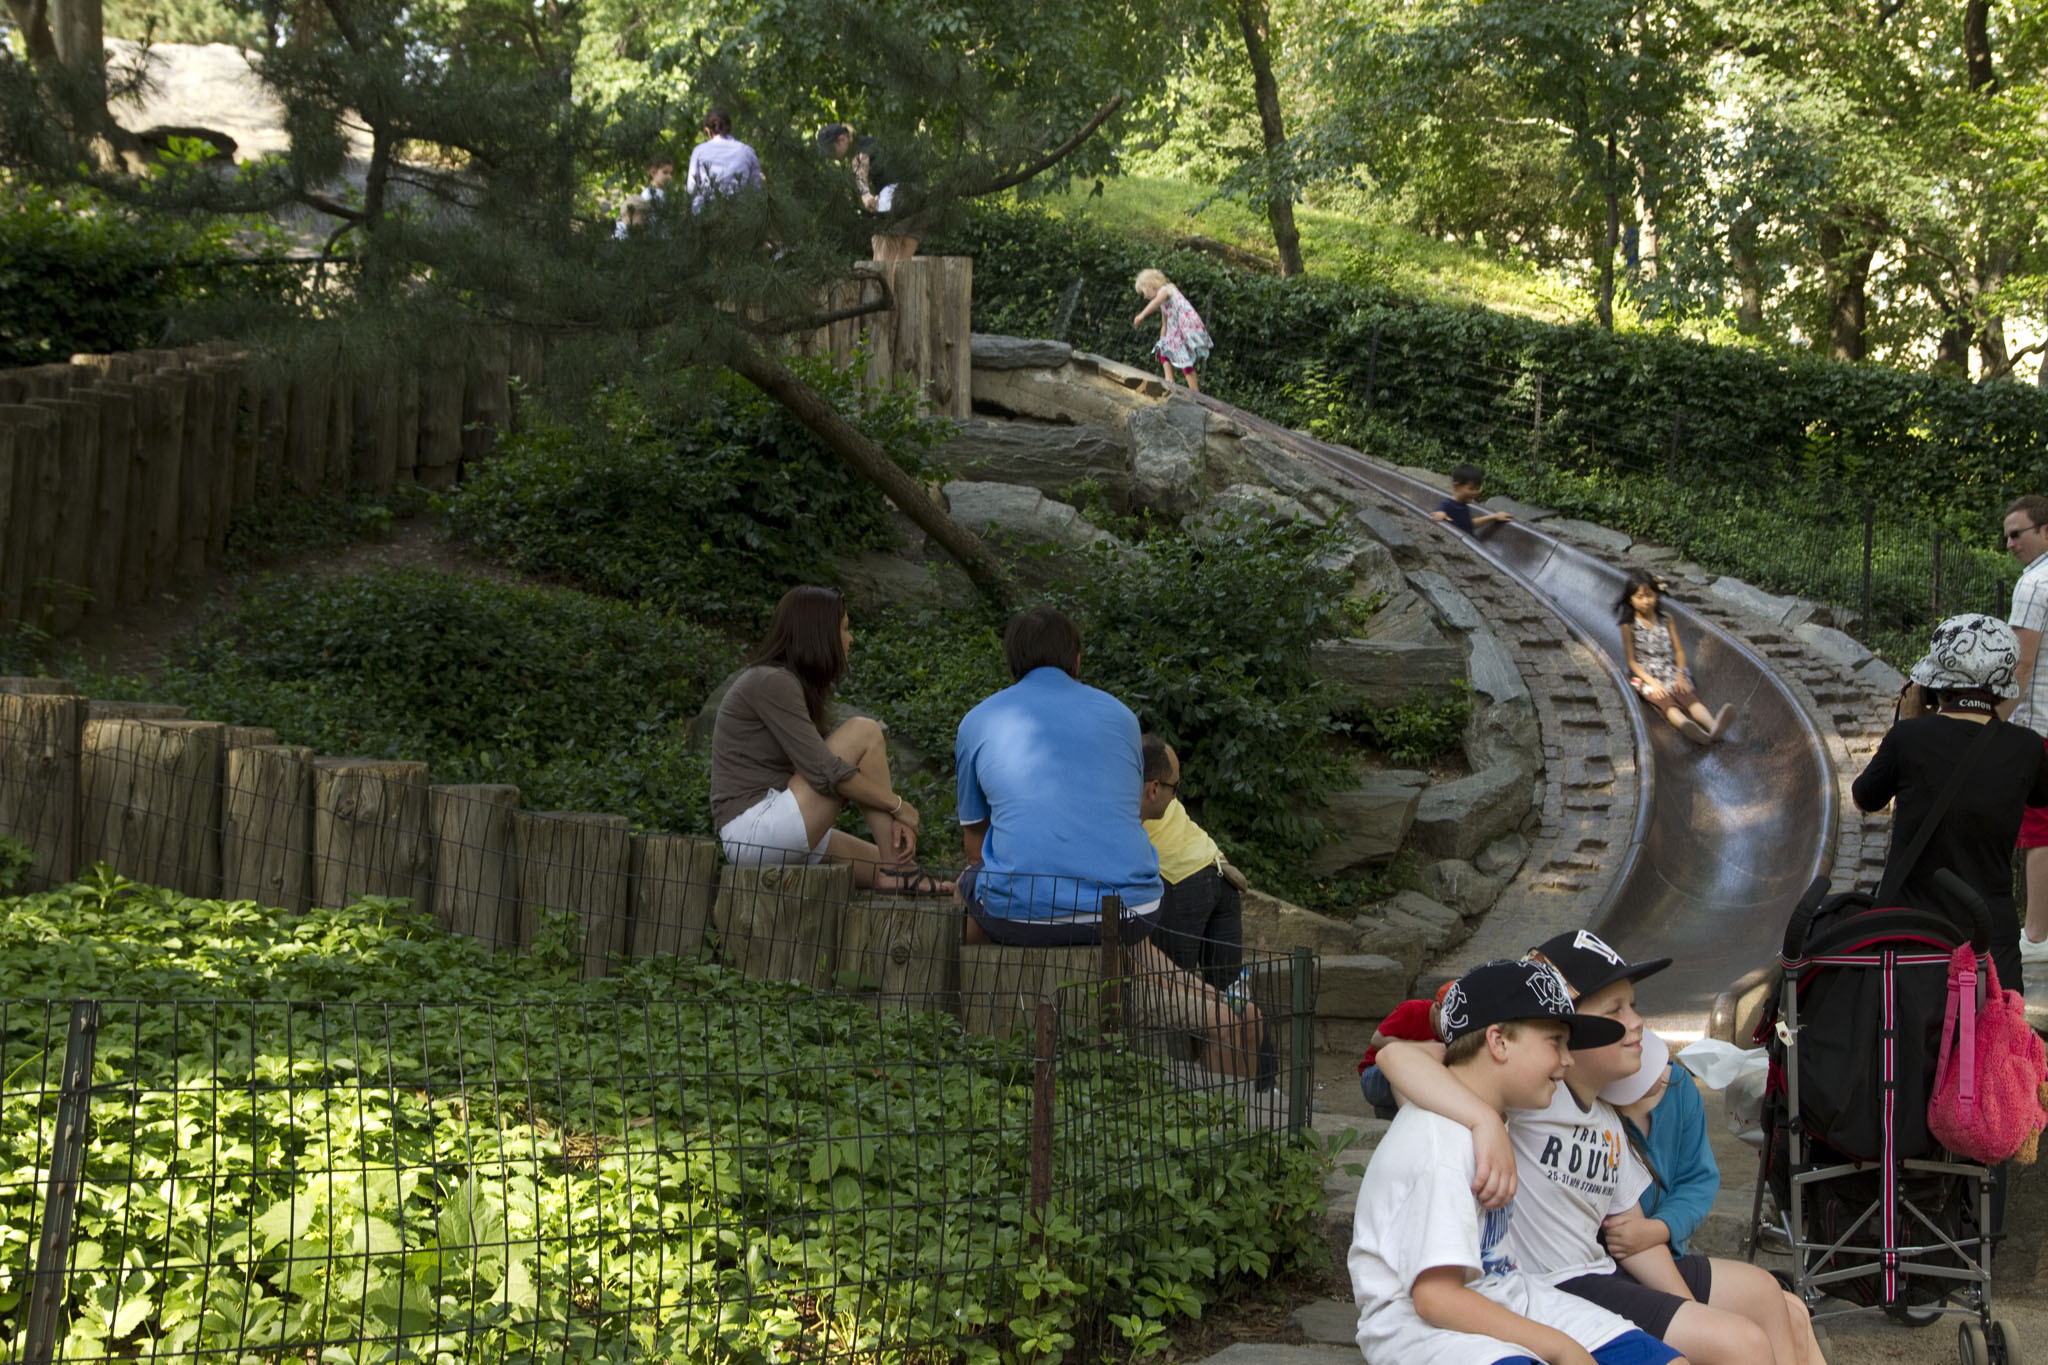 Visit all of NYC's best kids' playgrounds